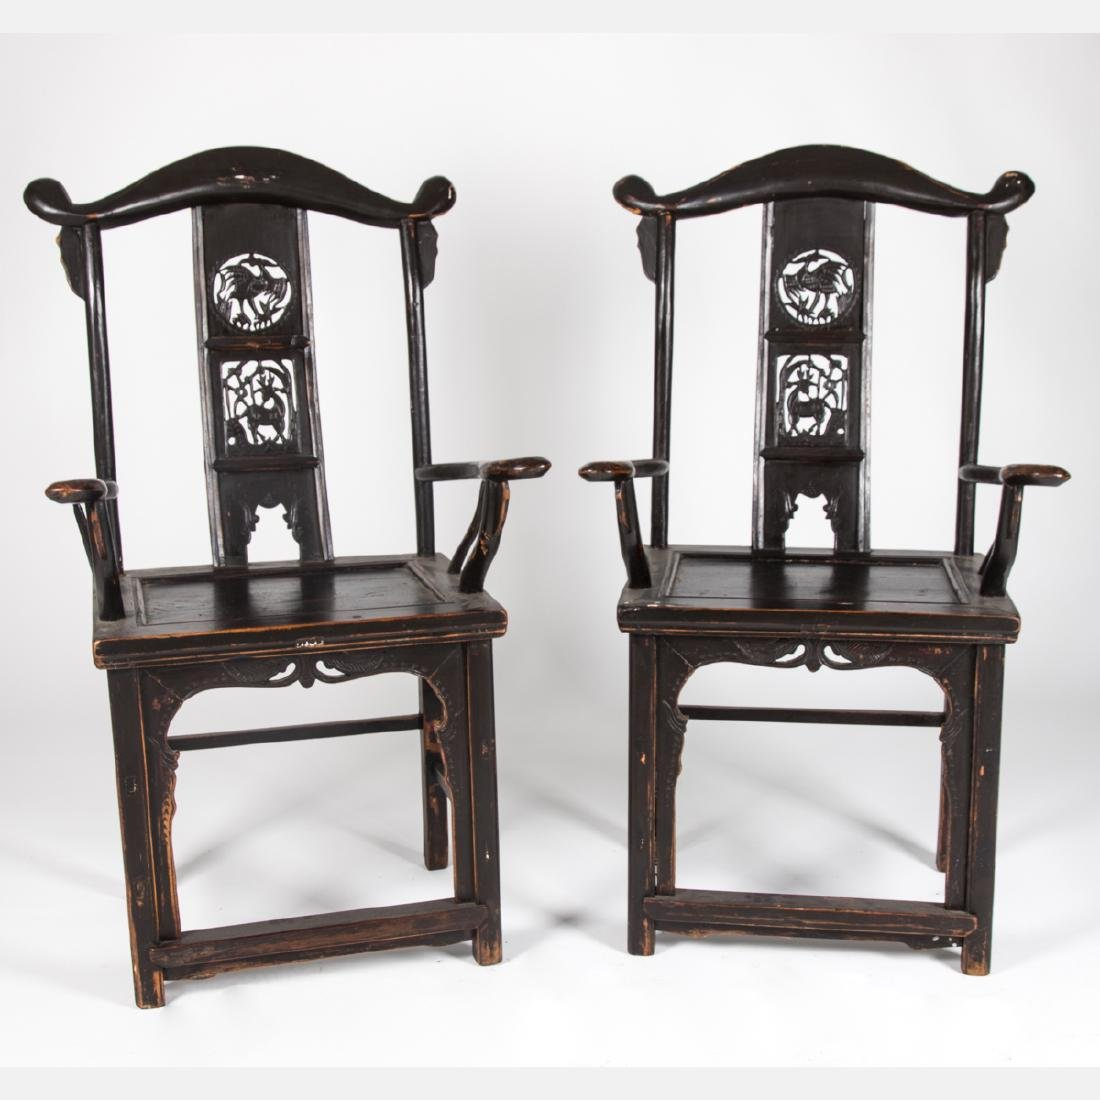 A Pair of Chinese Carved and Painted Yokeback